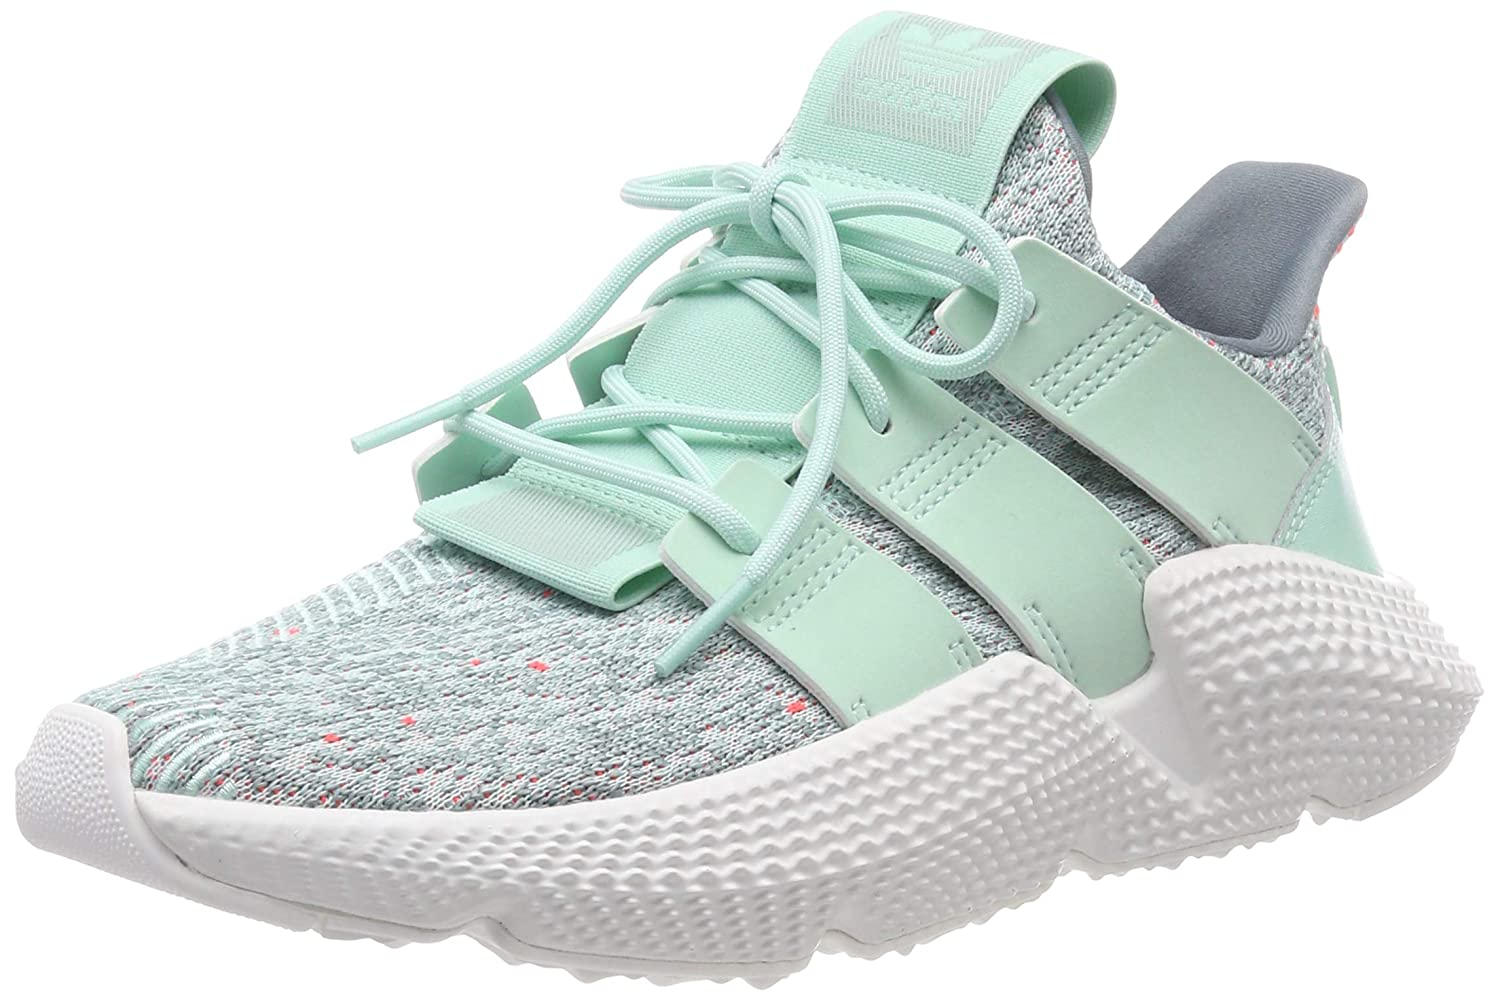 adidas Womens Prophere W Gymnastics Shoes, Green (Clear Mint/Clear Mint/Solar Red), 5.5 UK